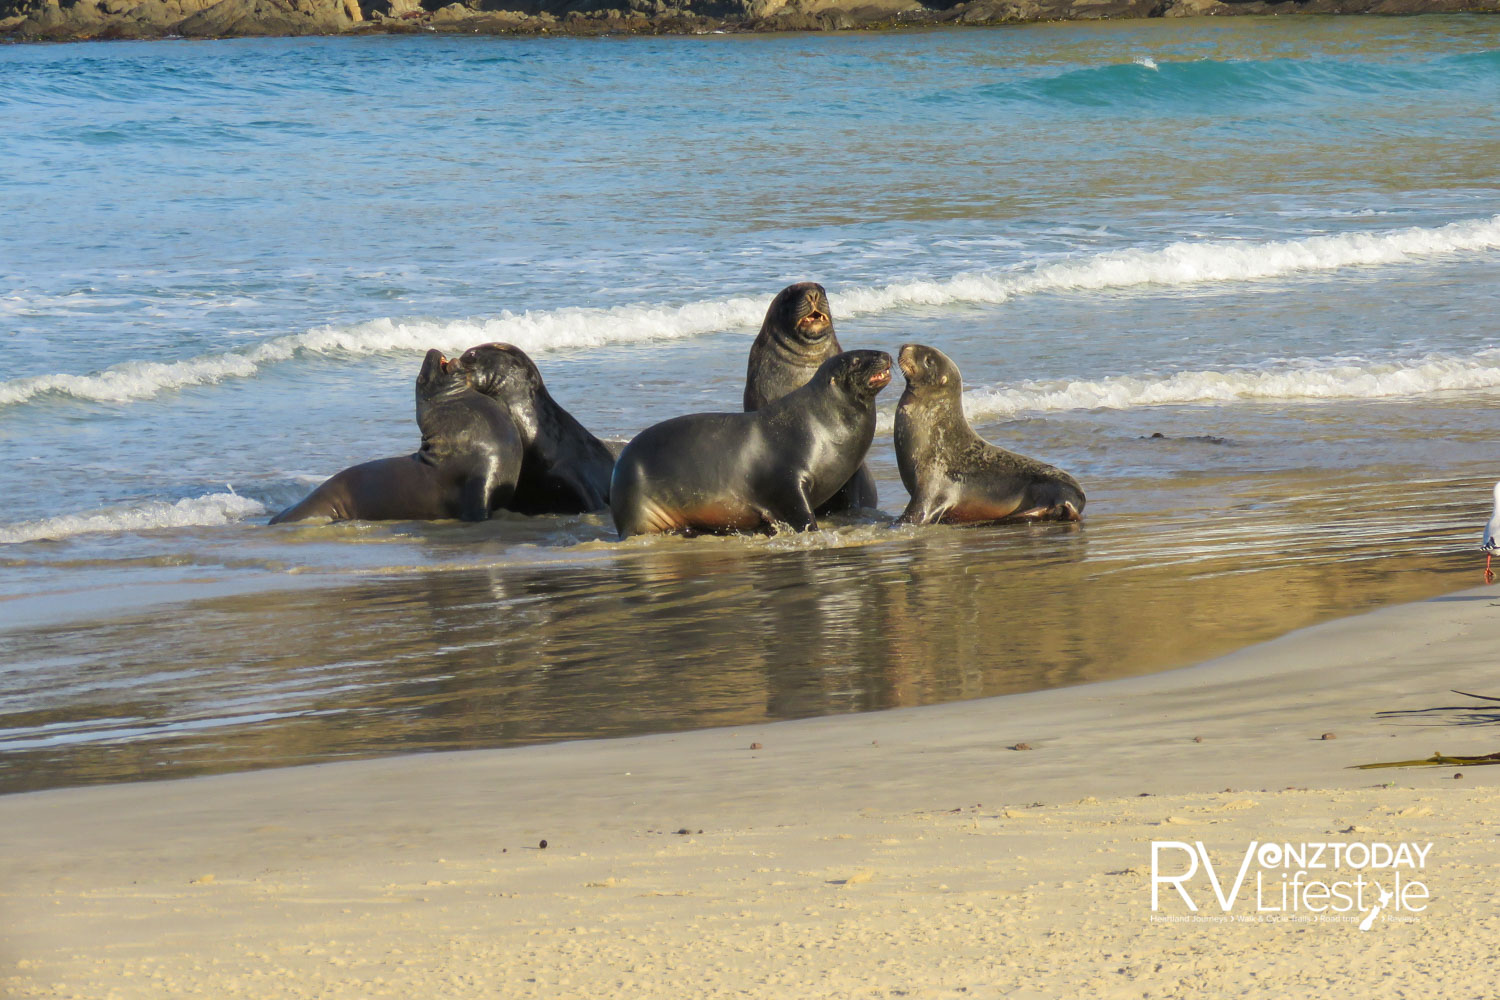 A group of New Zealand sea lions or 'rapoka', were having some sort of territorial dispute on the beach at Cannibal Bay